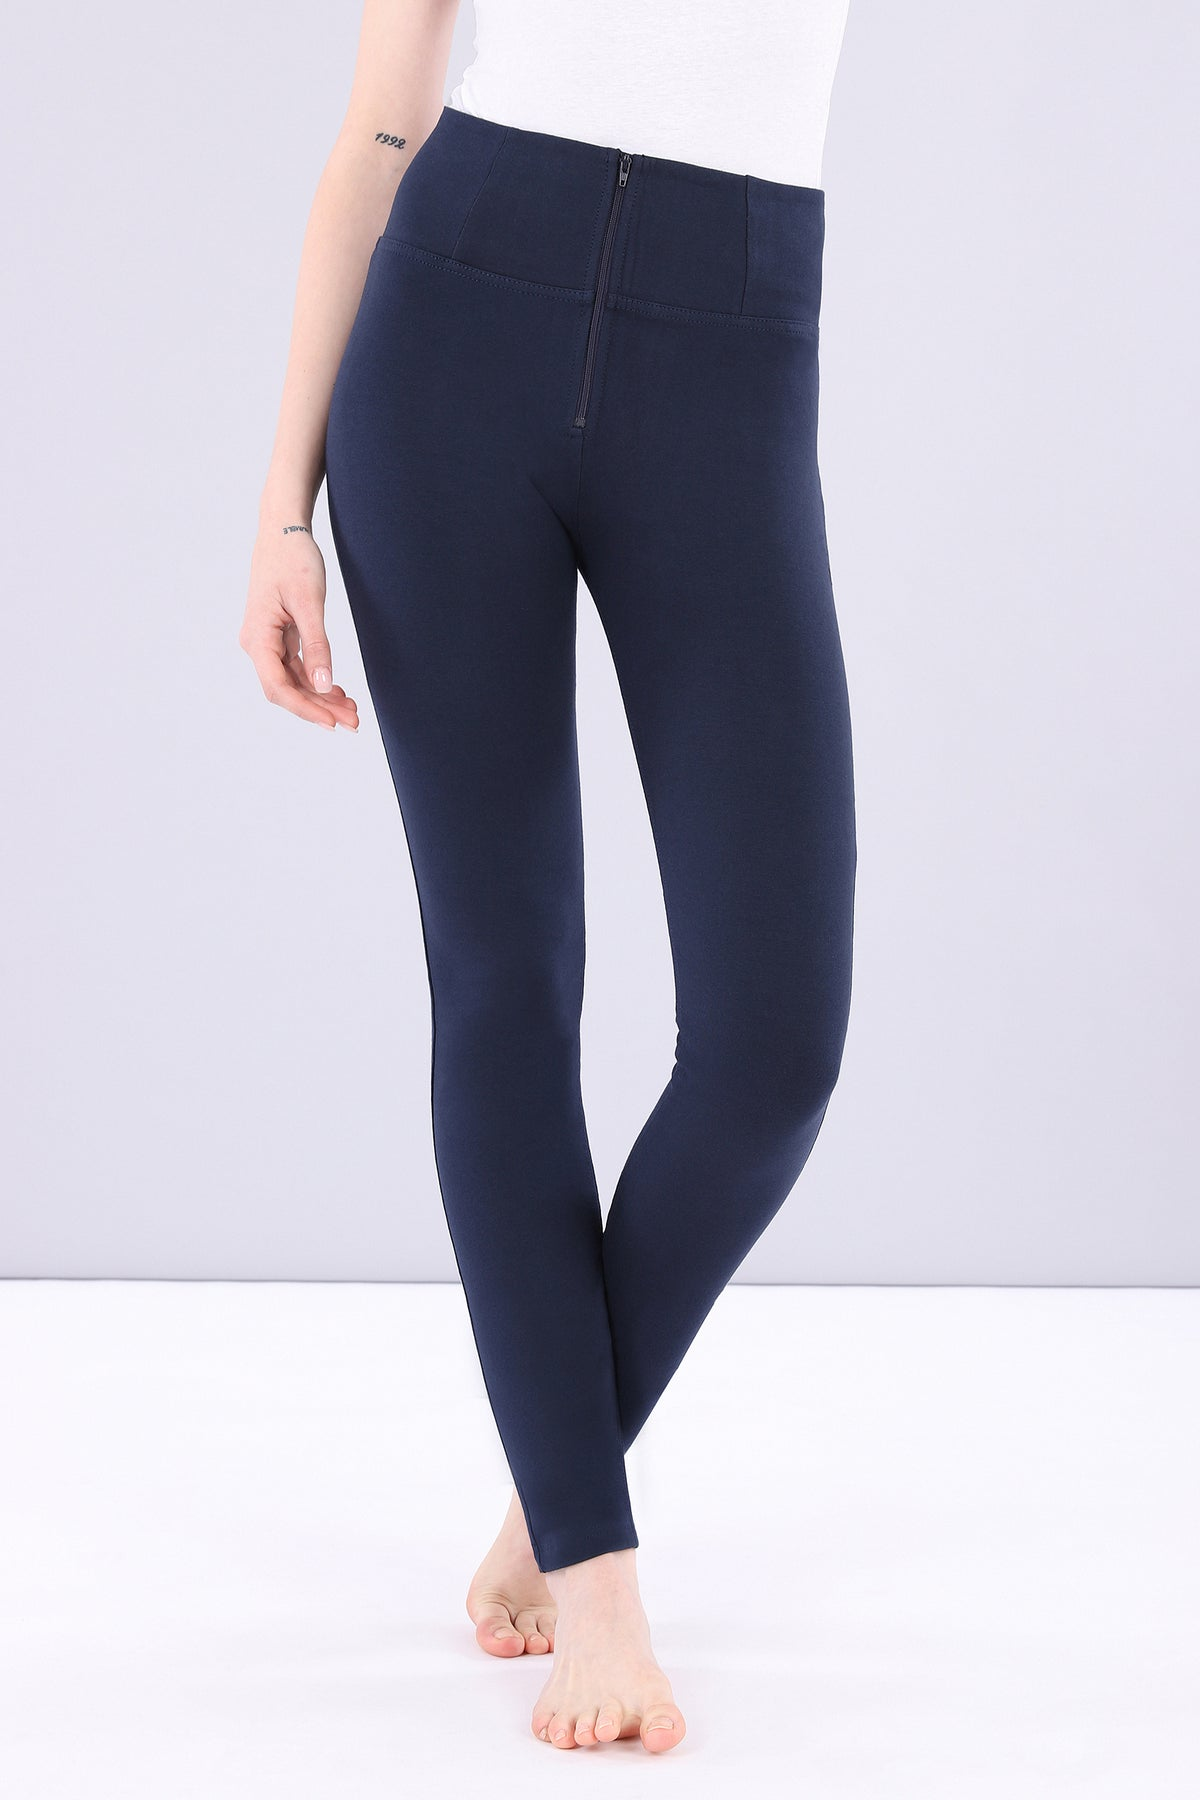 HIGH WAIST SKINNY NAVY SELF TONE ZIP